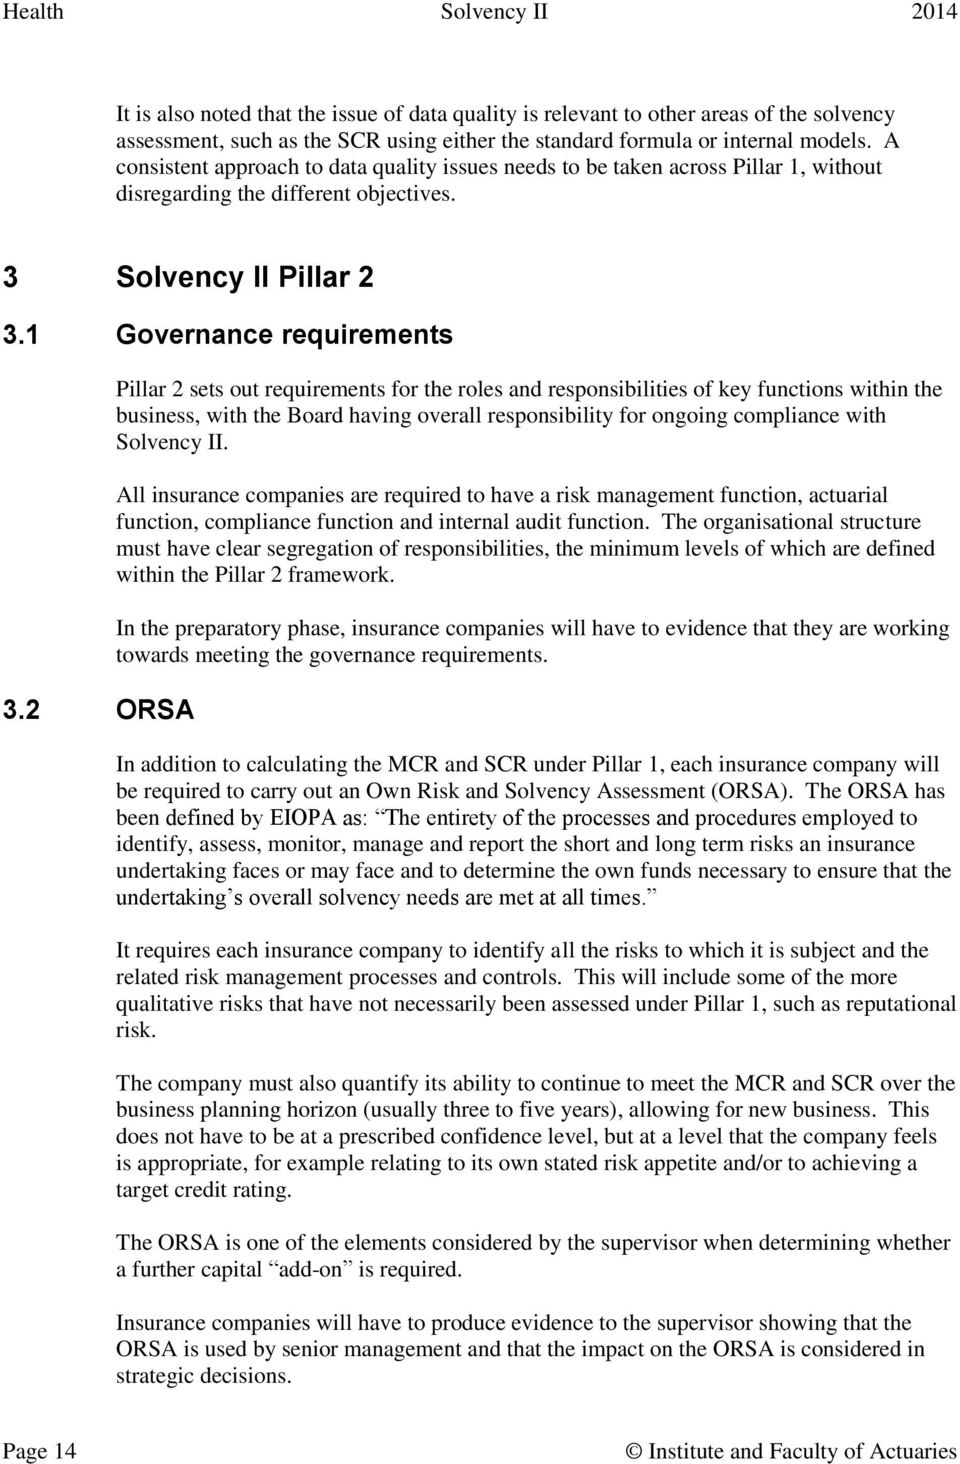 2 ORSA Pillar 2 sets out requirements for the roles and responsibilities of key functions within the business, with the Board having overall responsibility for ongoing compliance with Solvency II.